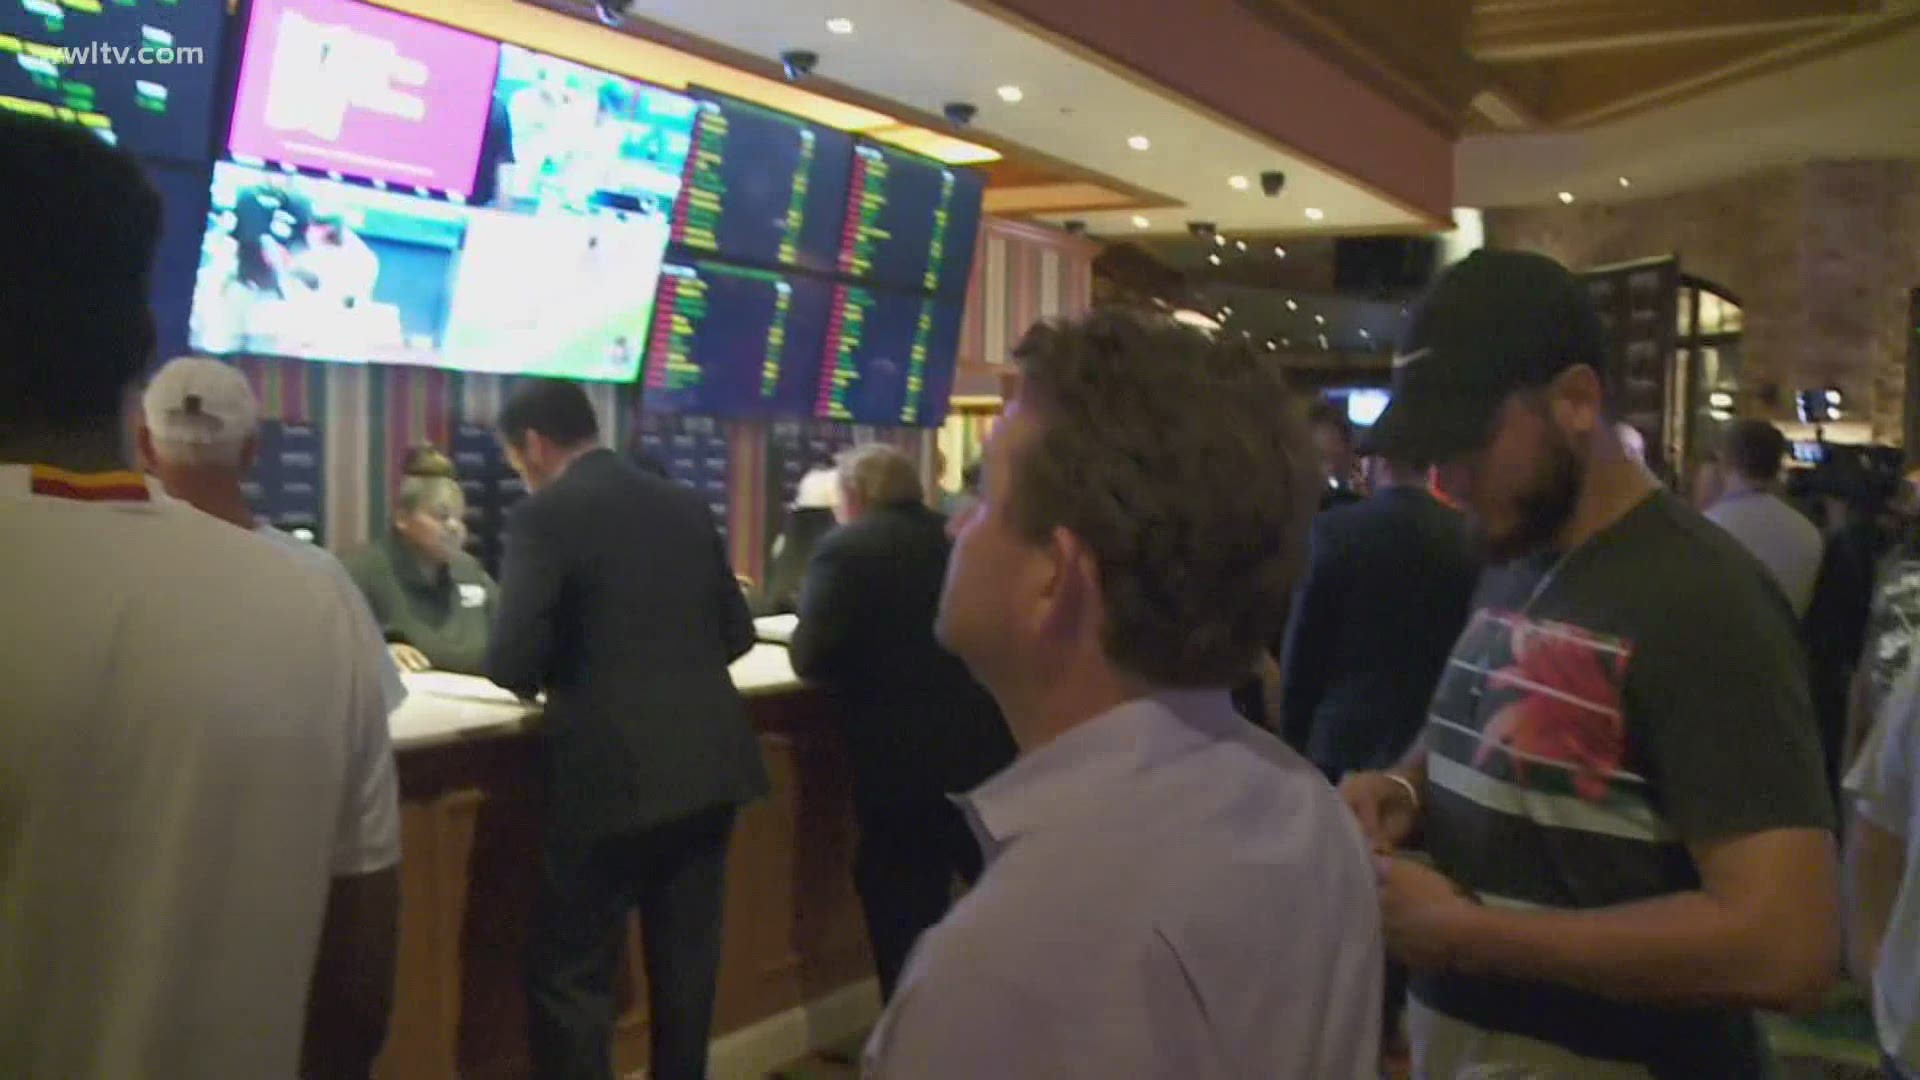 how long will it be before betting on sports